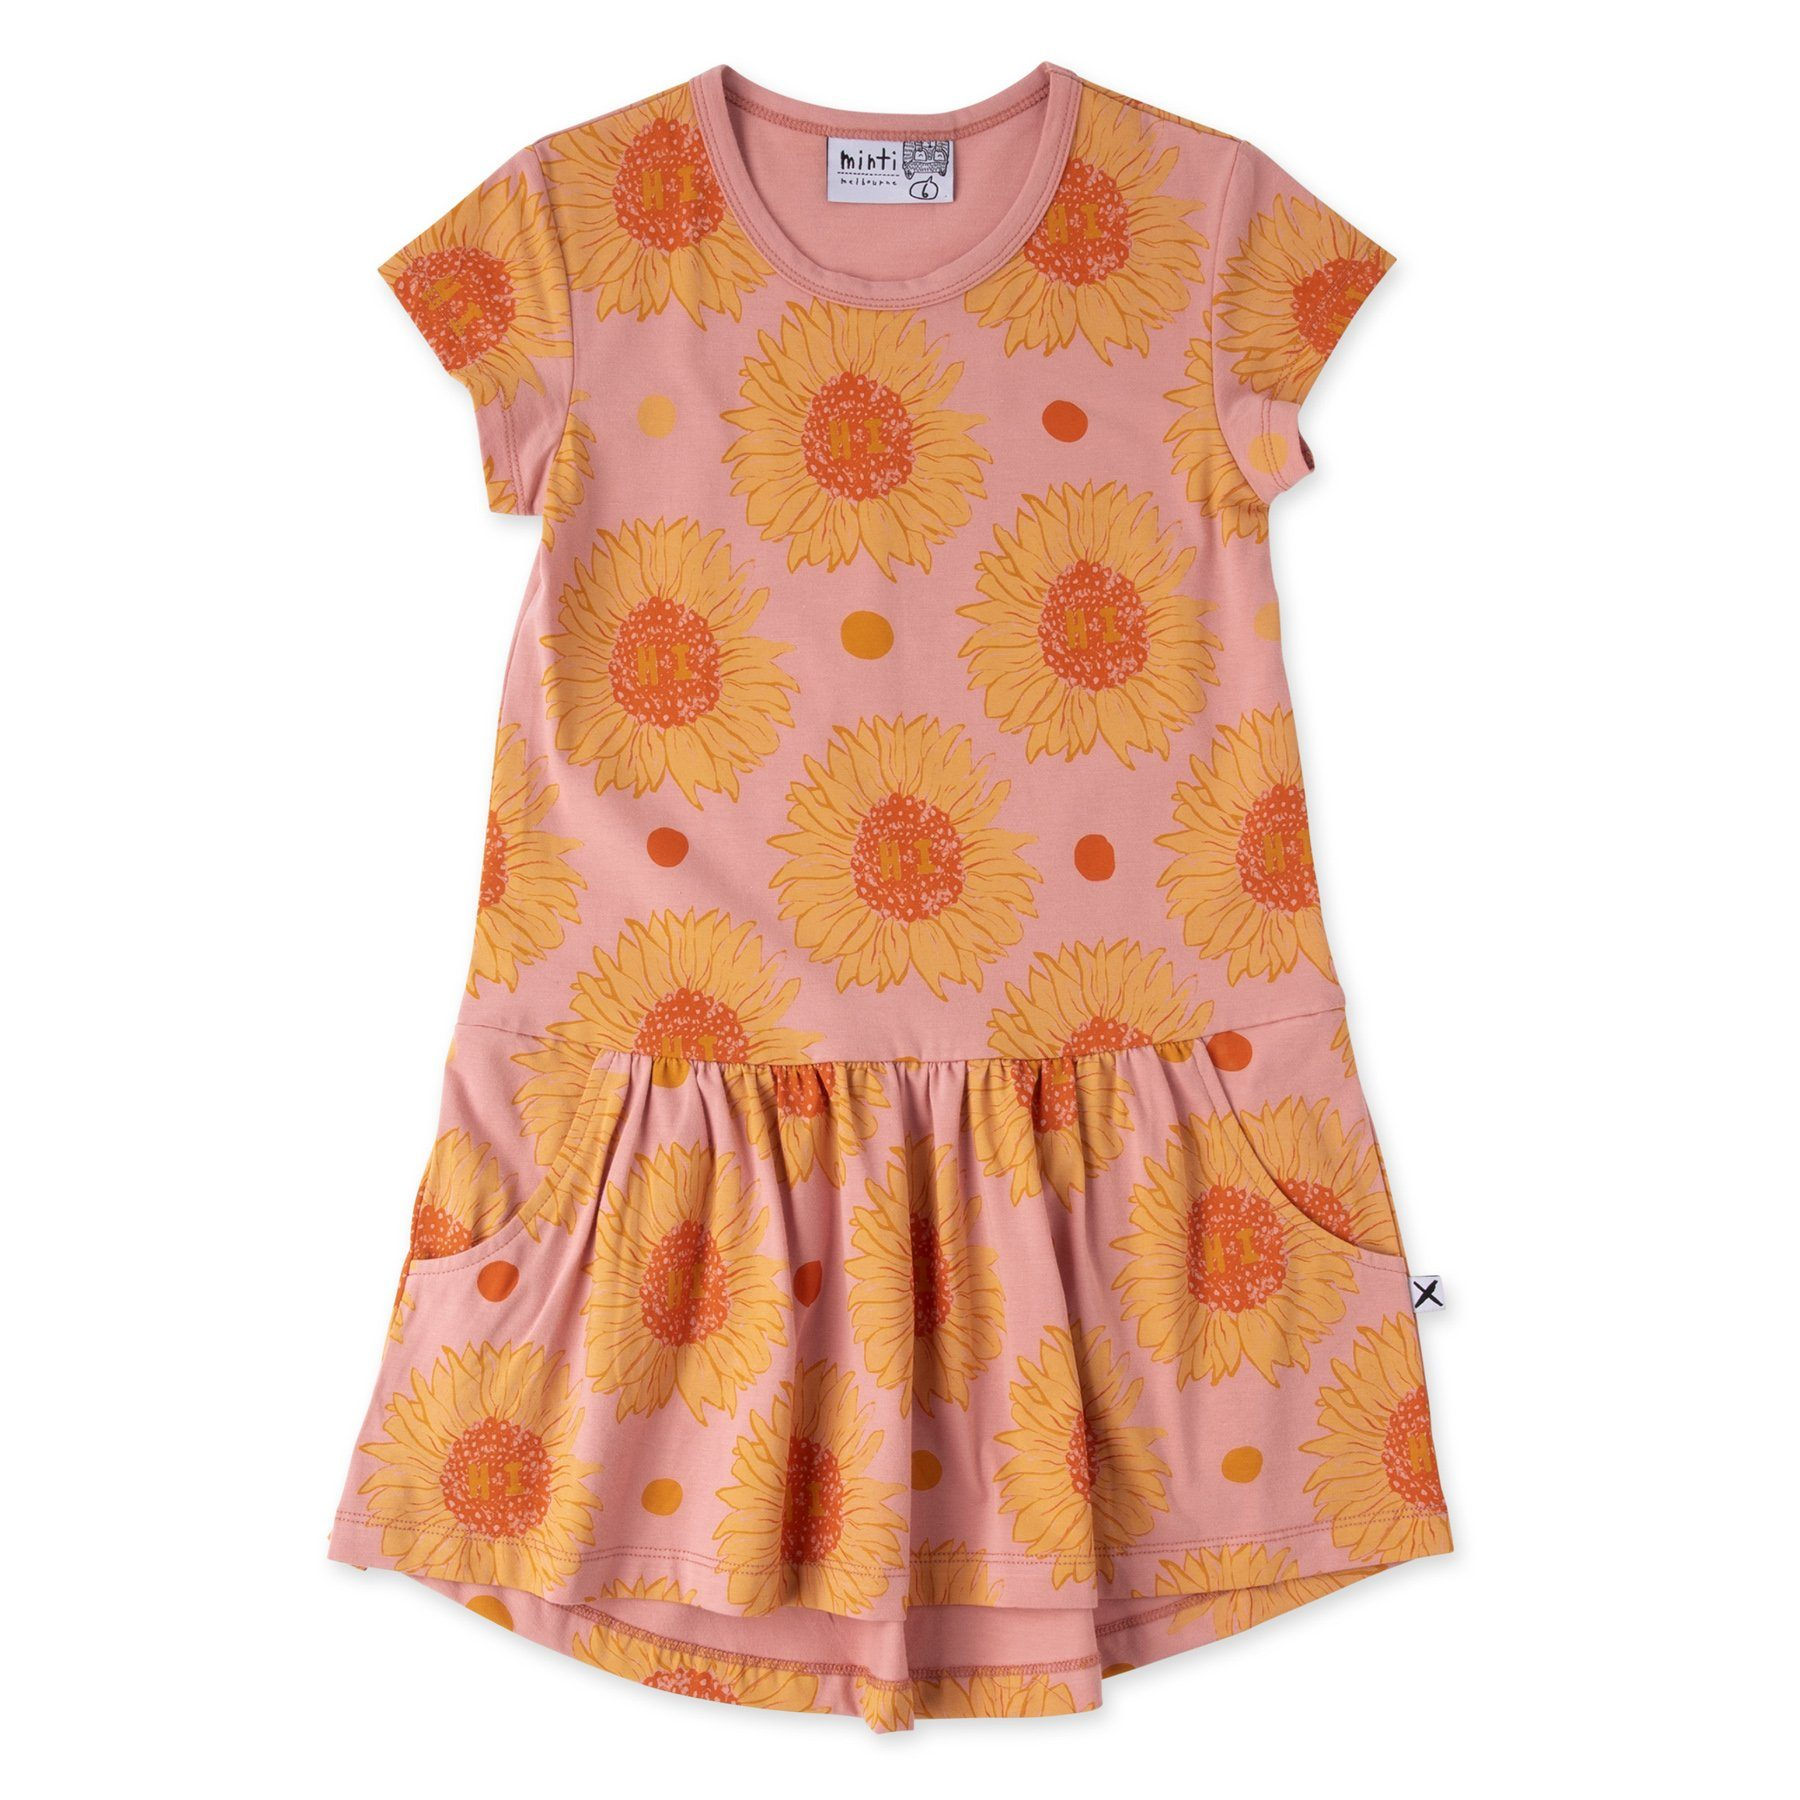 Friendly Sunflowers Dress